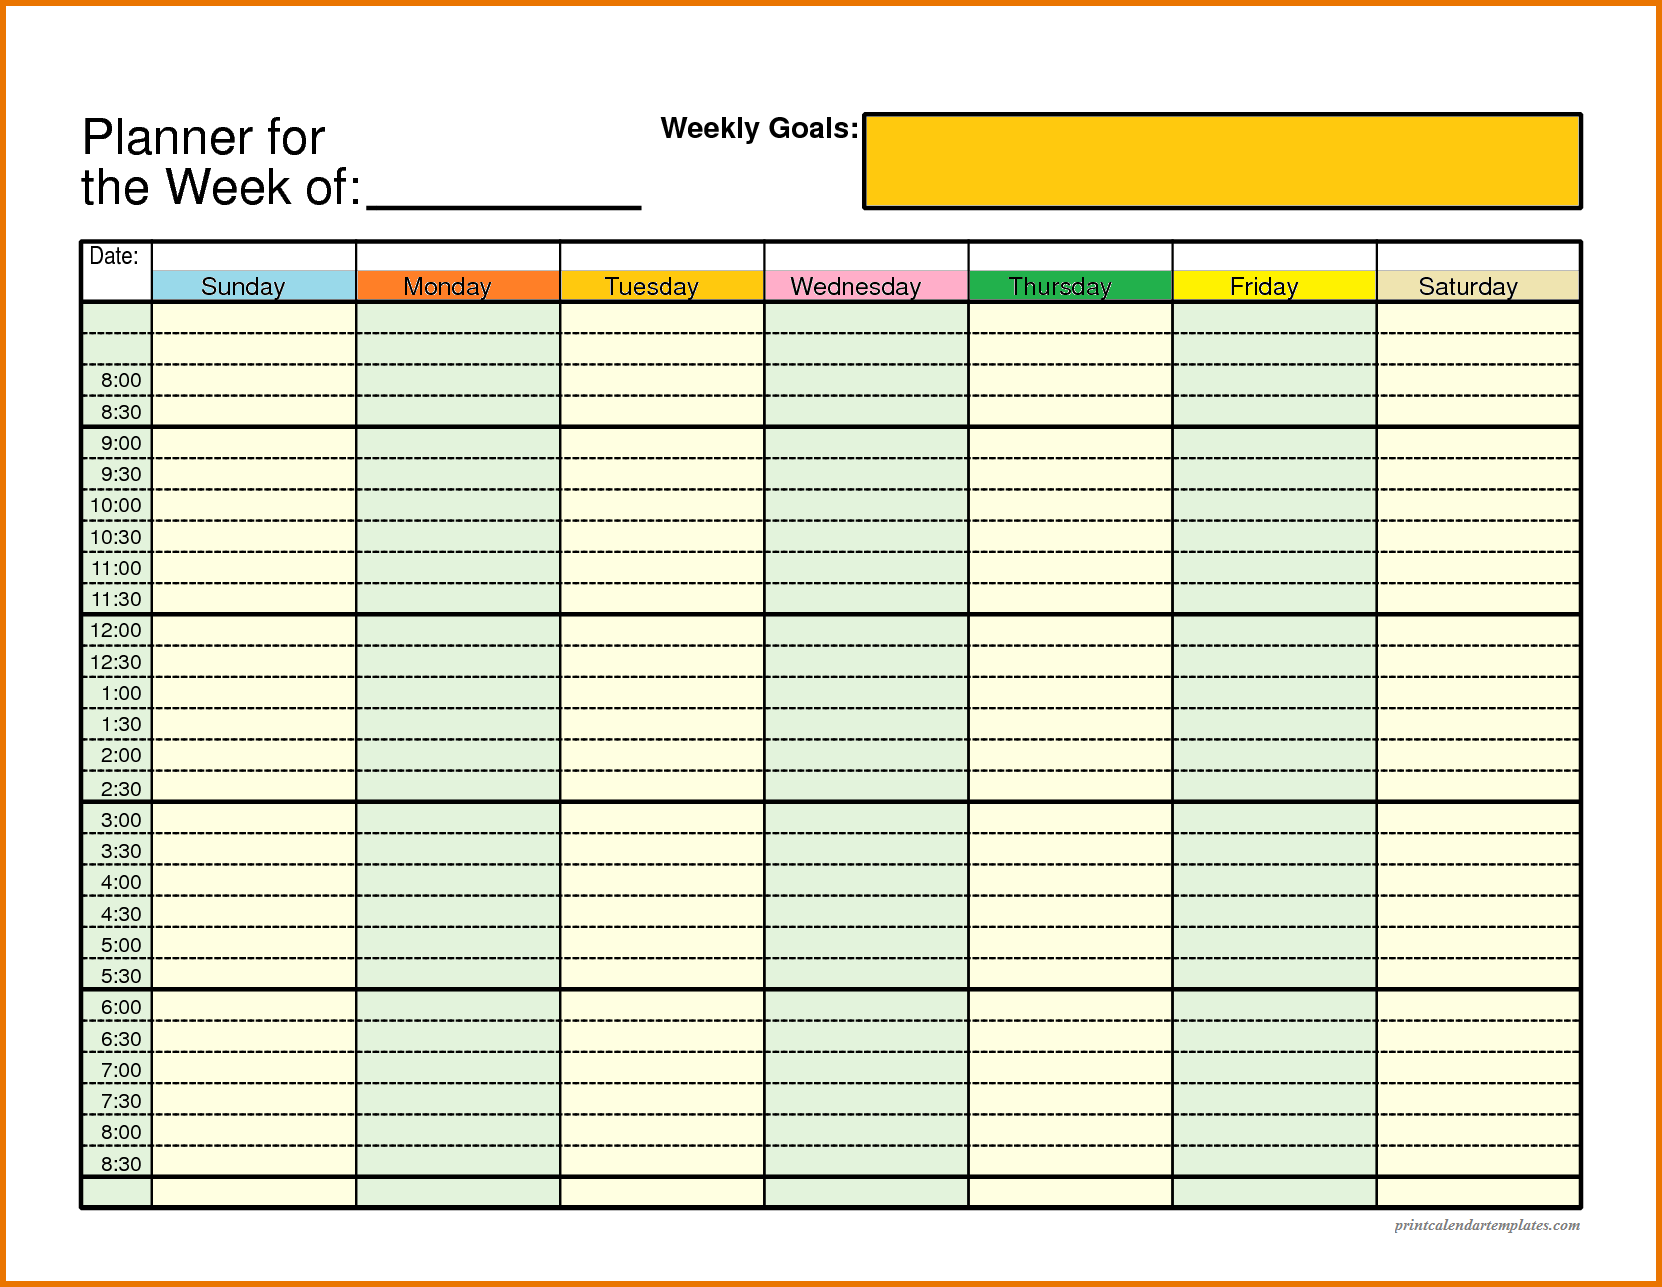 online weekly planner template koni polycode co